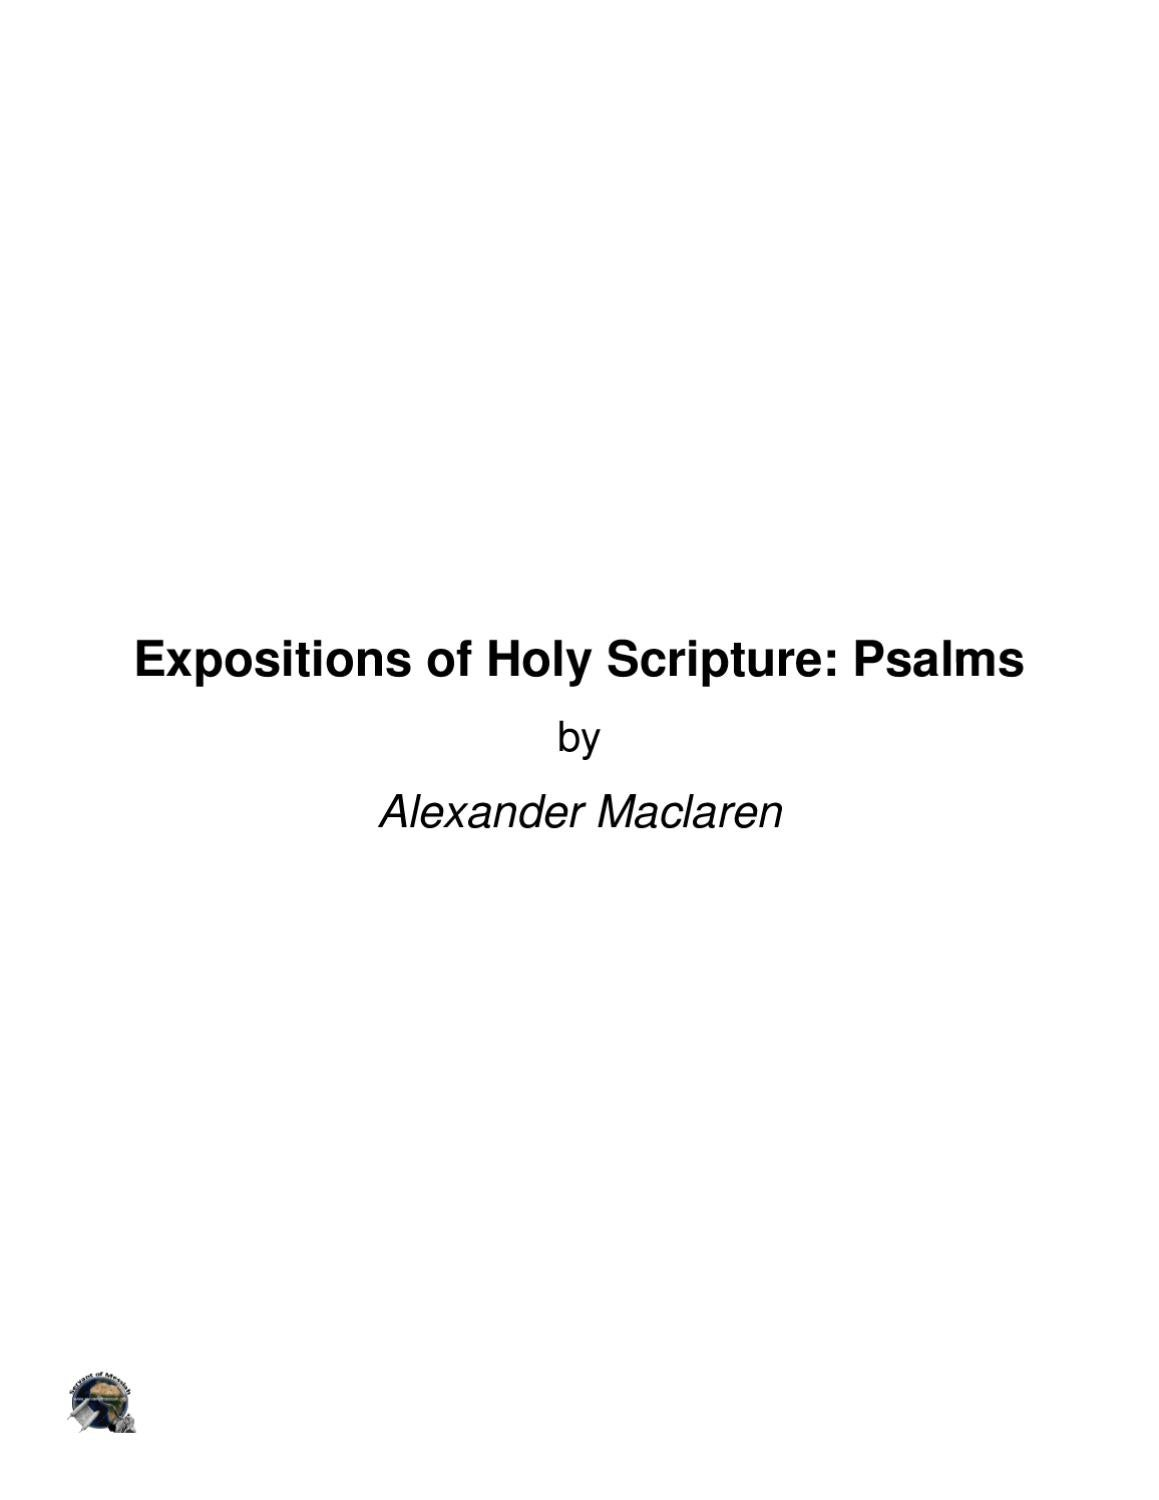 alexander maclaren expositions of holy scripture pdf